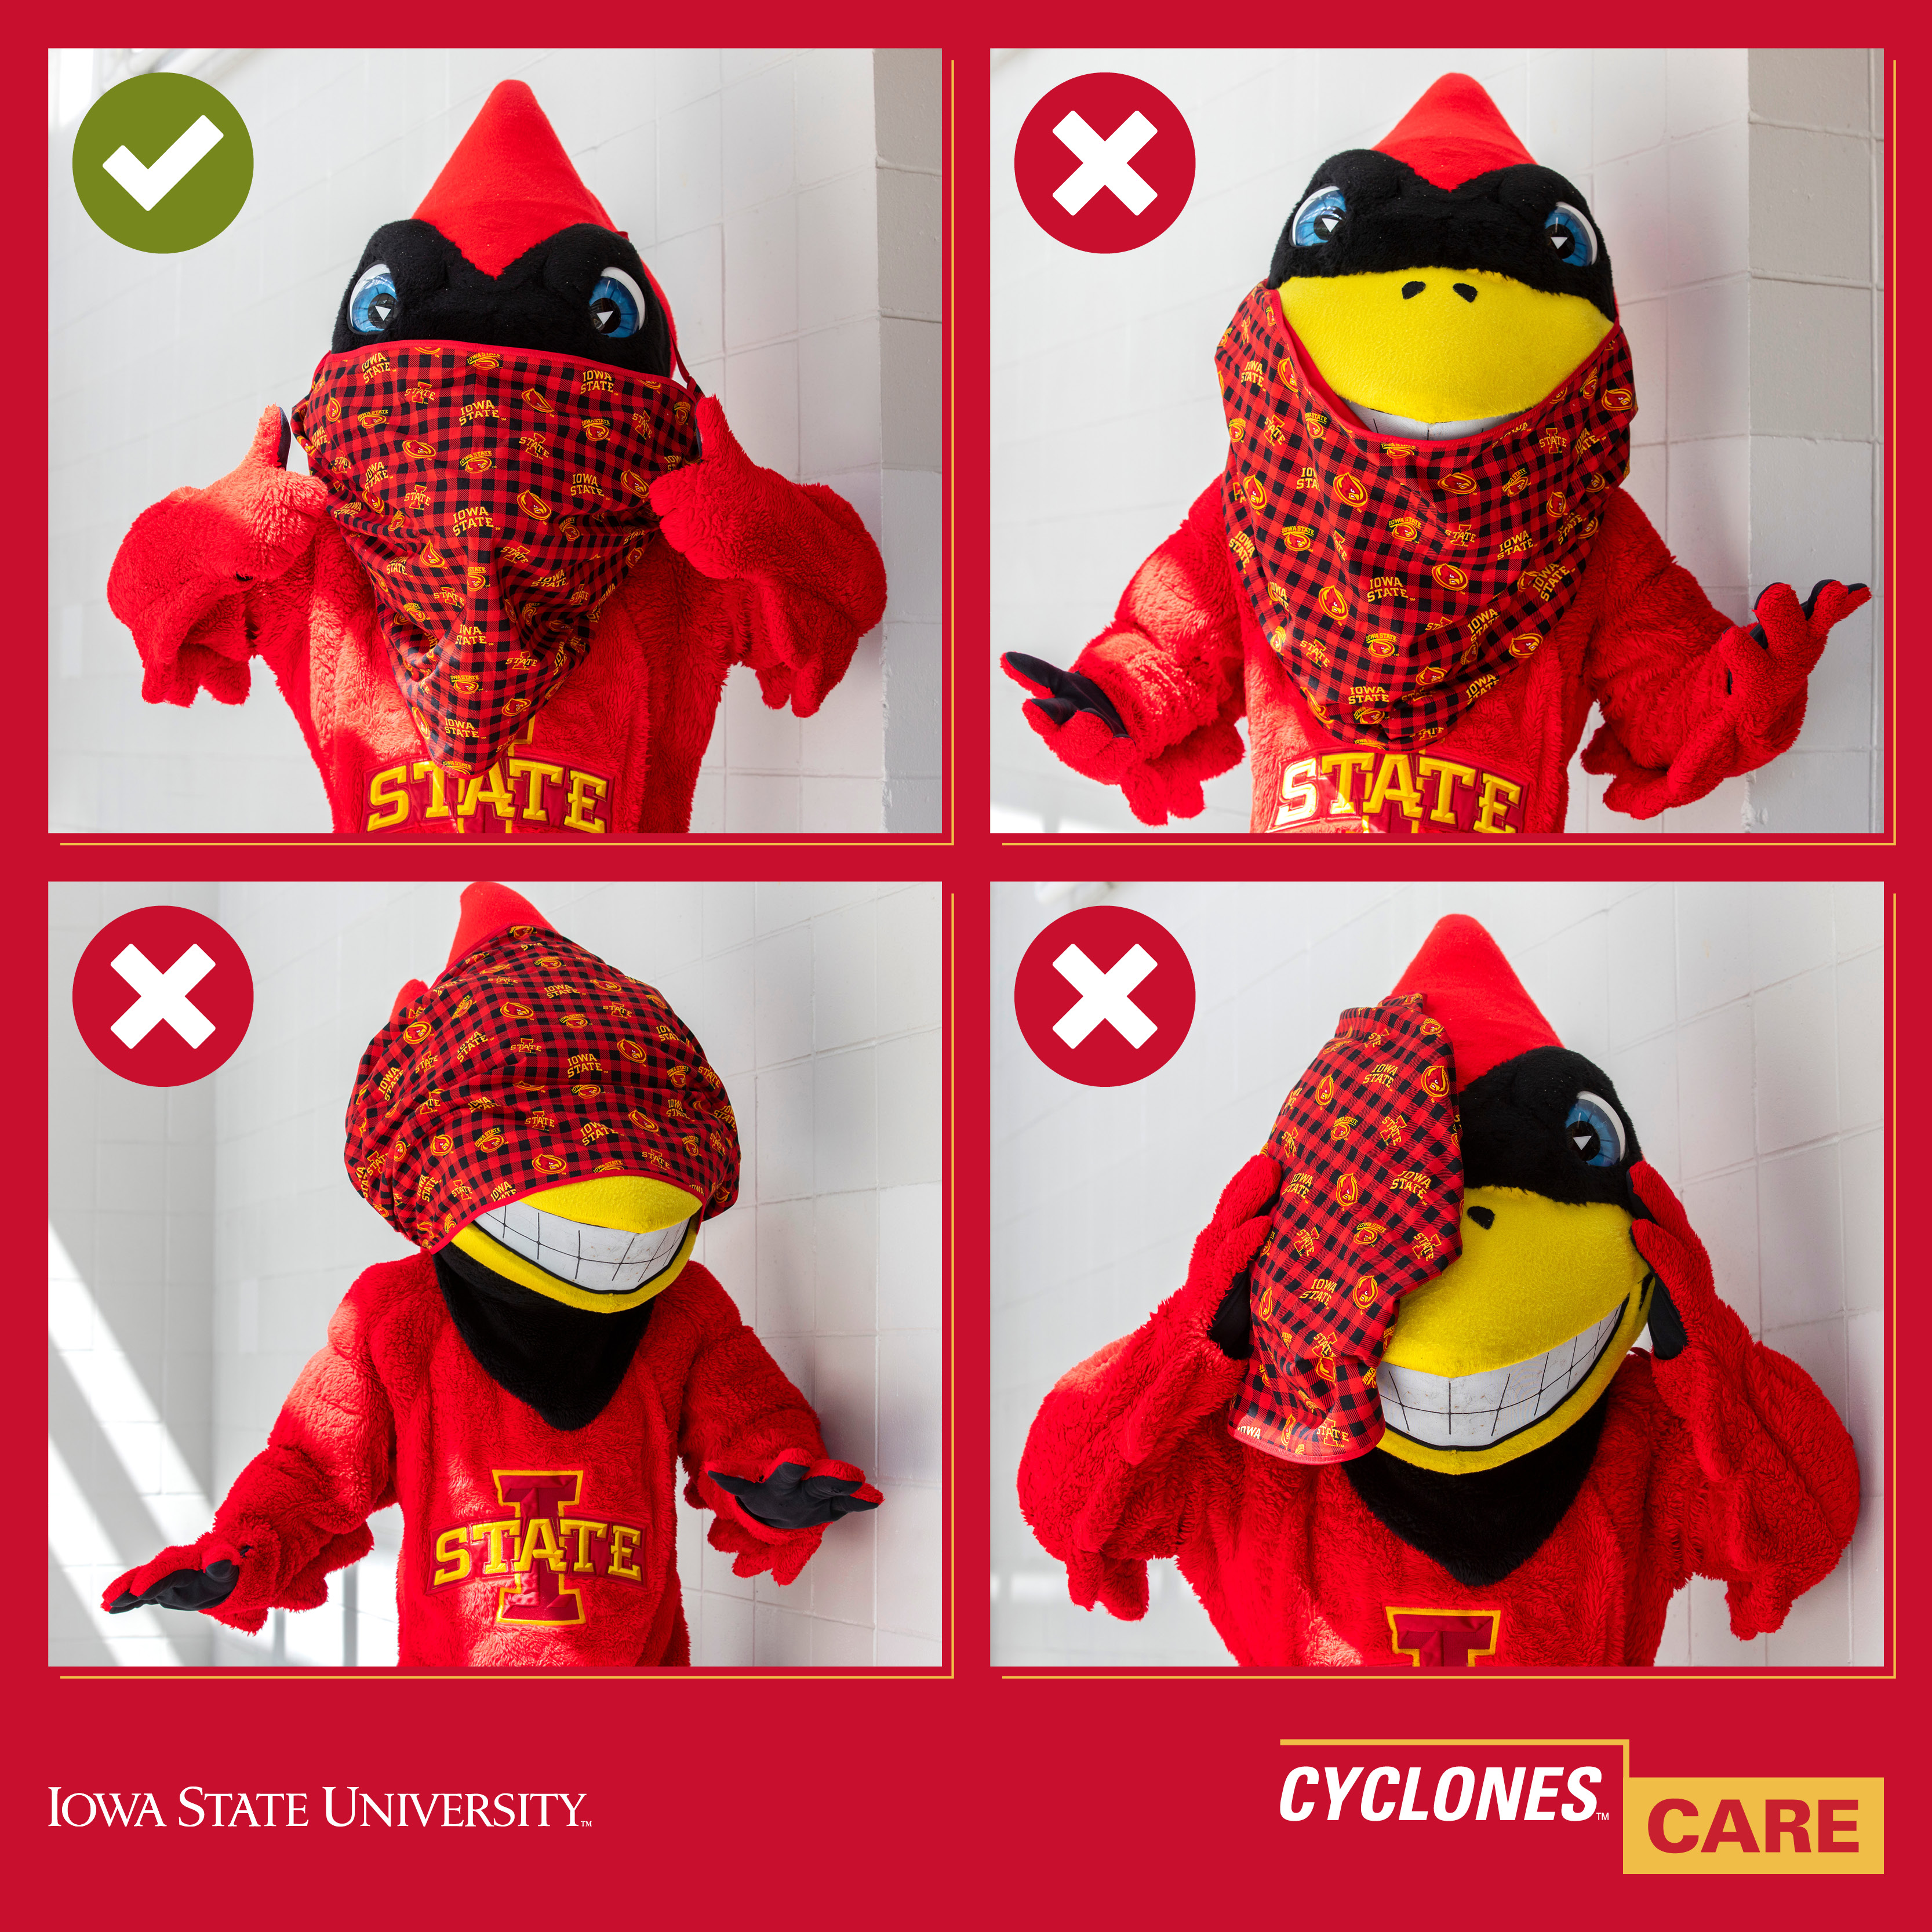 4-image graphic of Cy mascot showing right and wrong ways to wear a mask